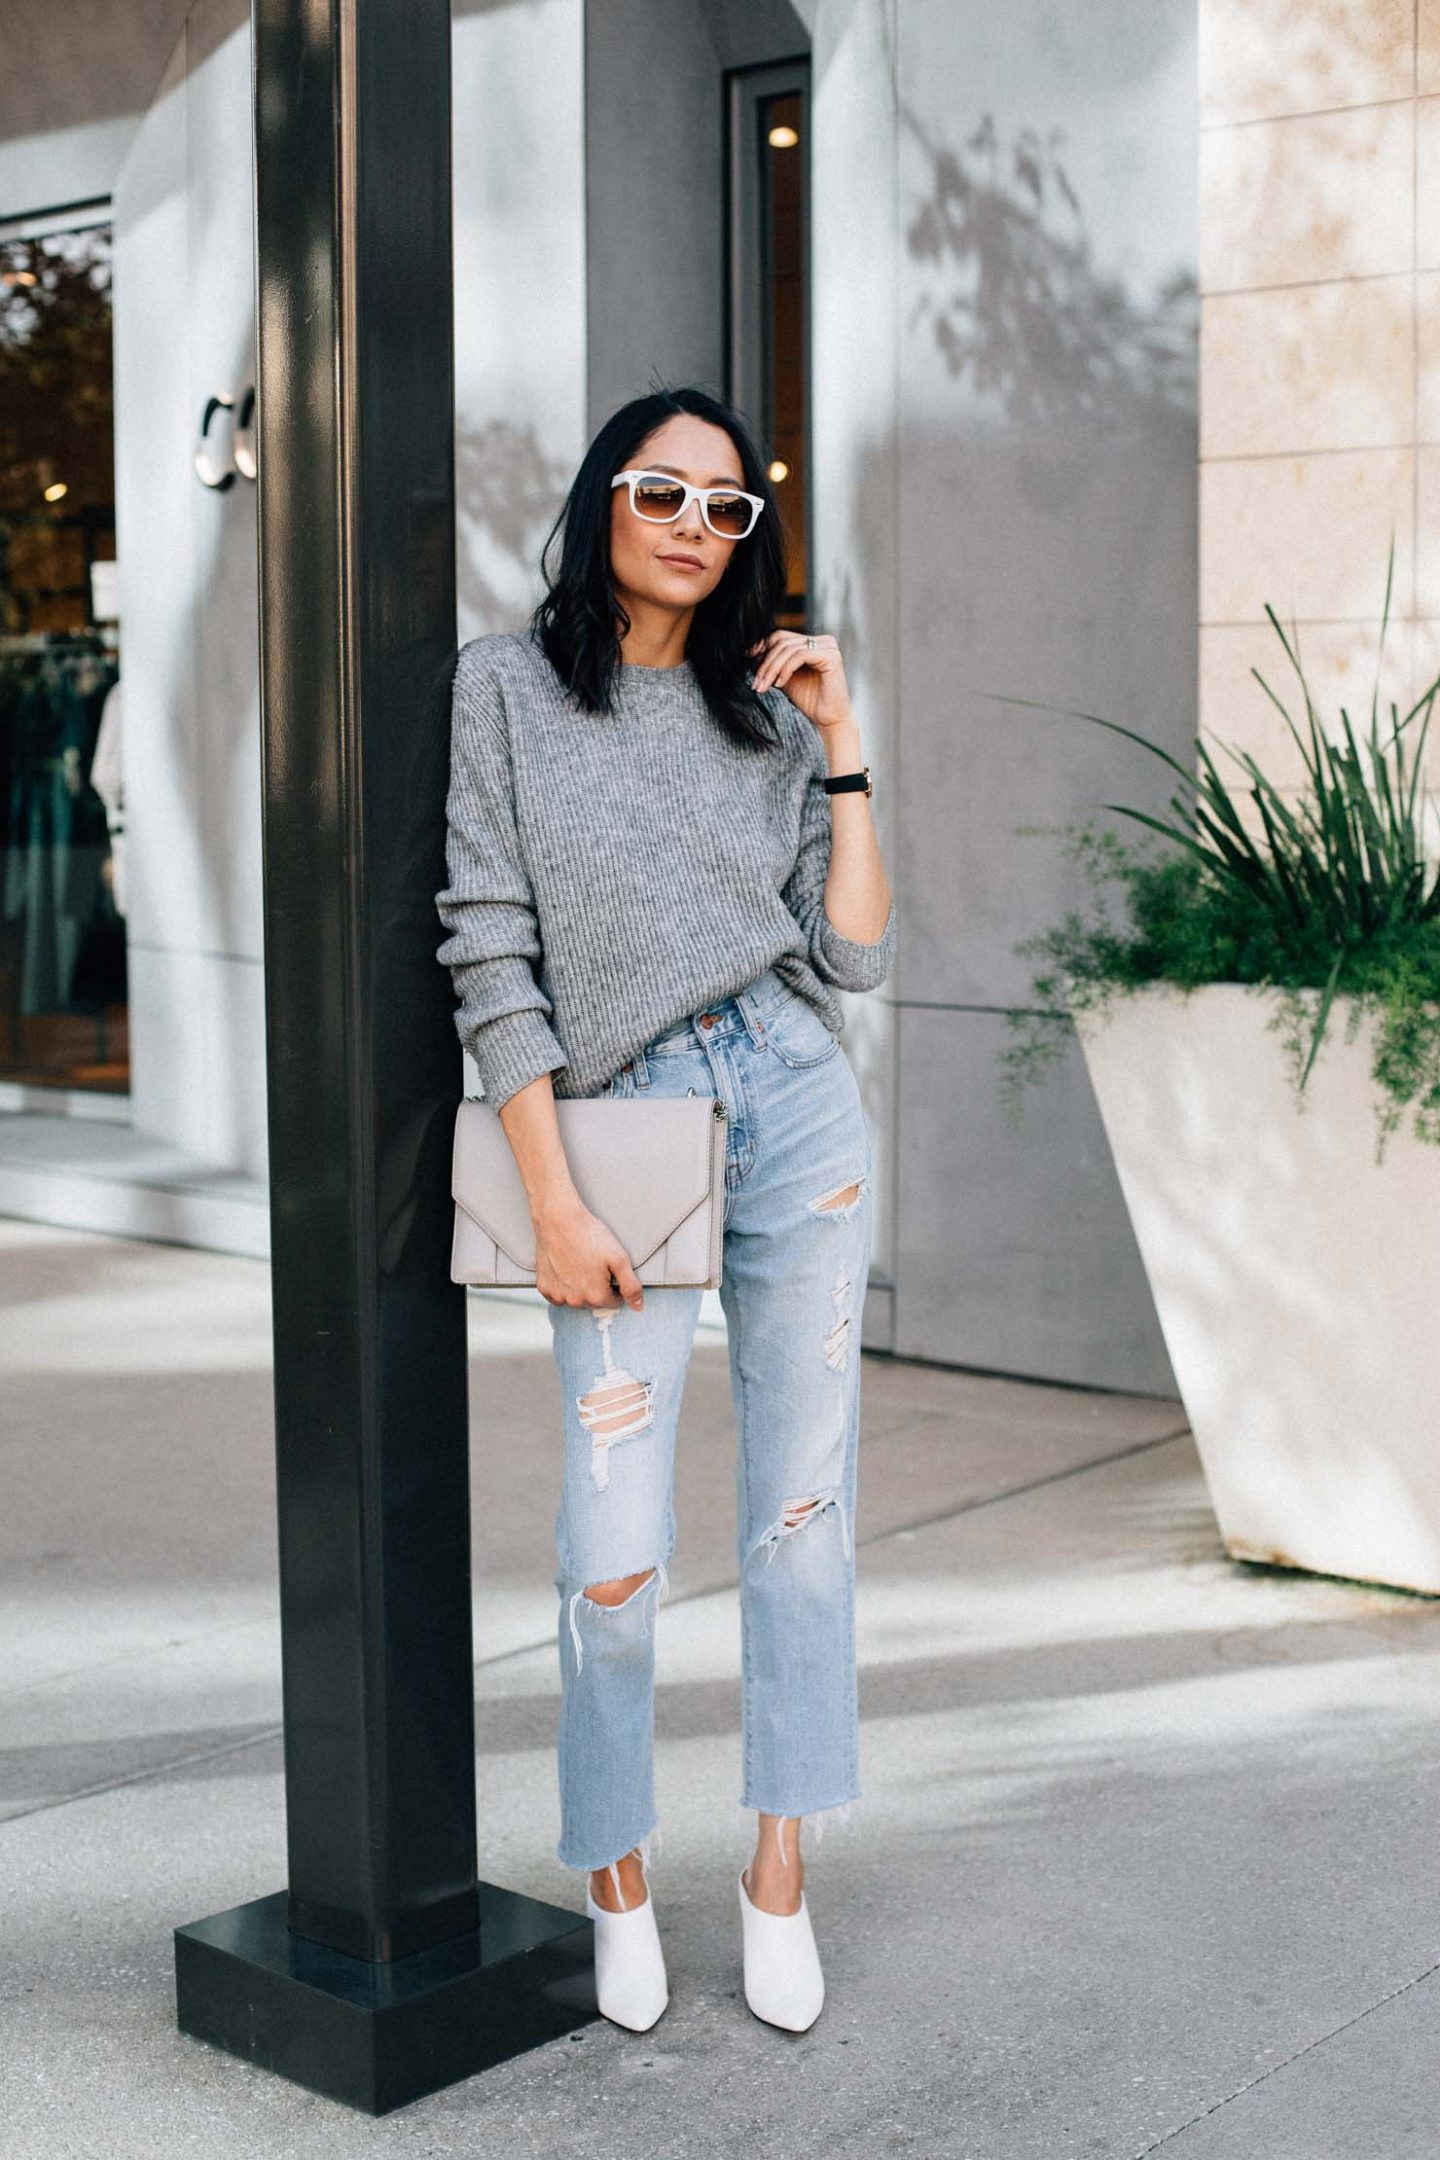 Casual Fall Outfit: Oversized Sweater and Vintage Denim